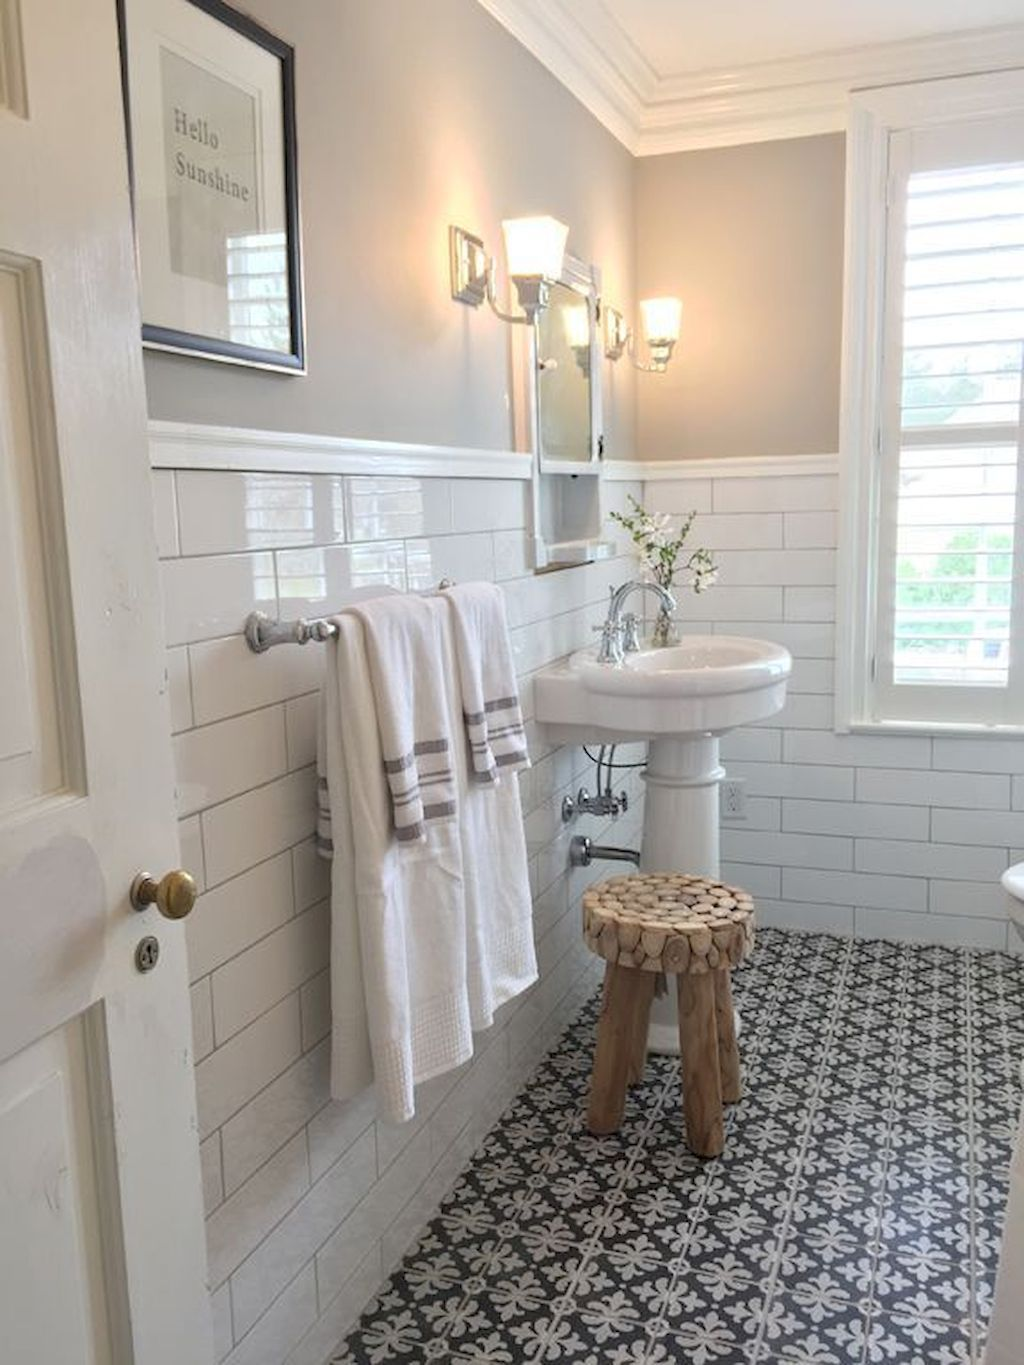 Beautiful farmhouse bathroom remodel decor ideas 67